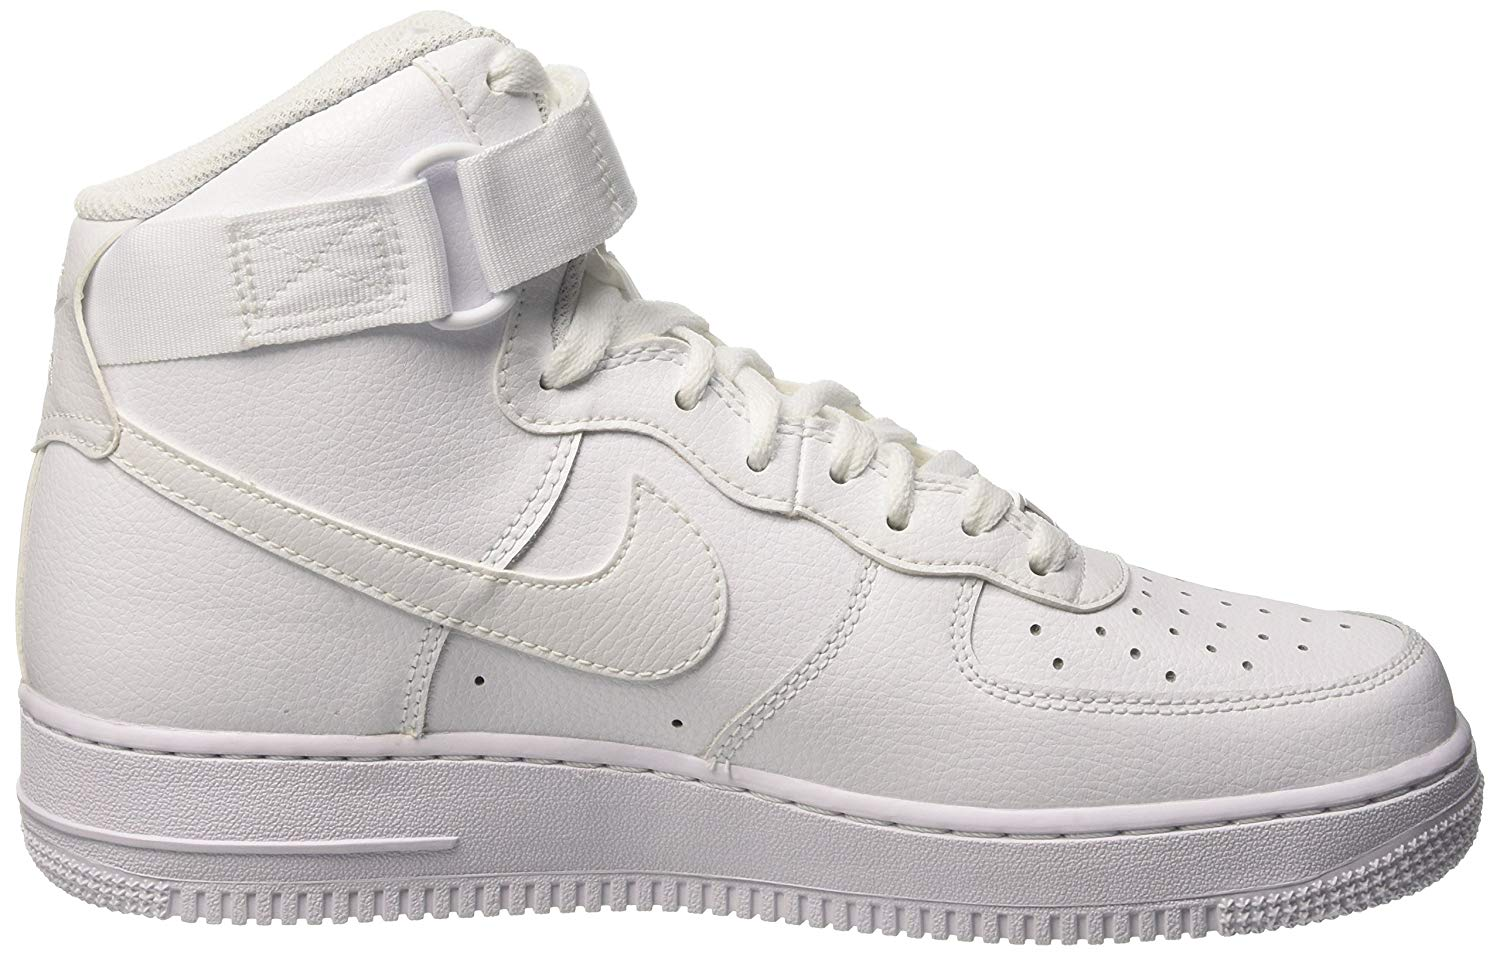 Nike Air Force 1 High Top Review